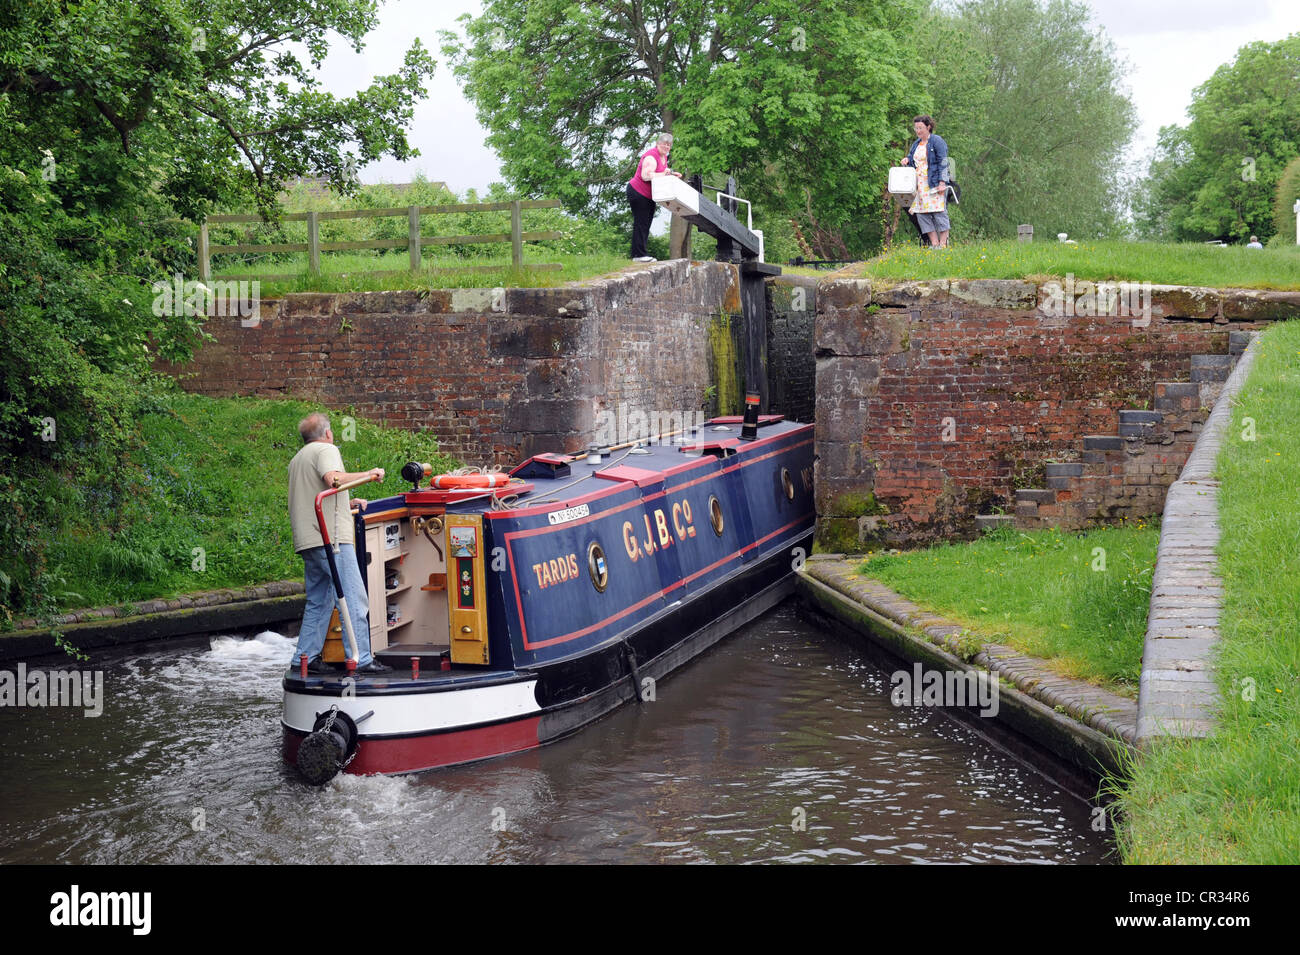 Canal boating on the Trent & Mersey and Staffs & Worcester Canals - Stock Image